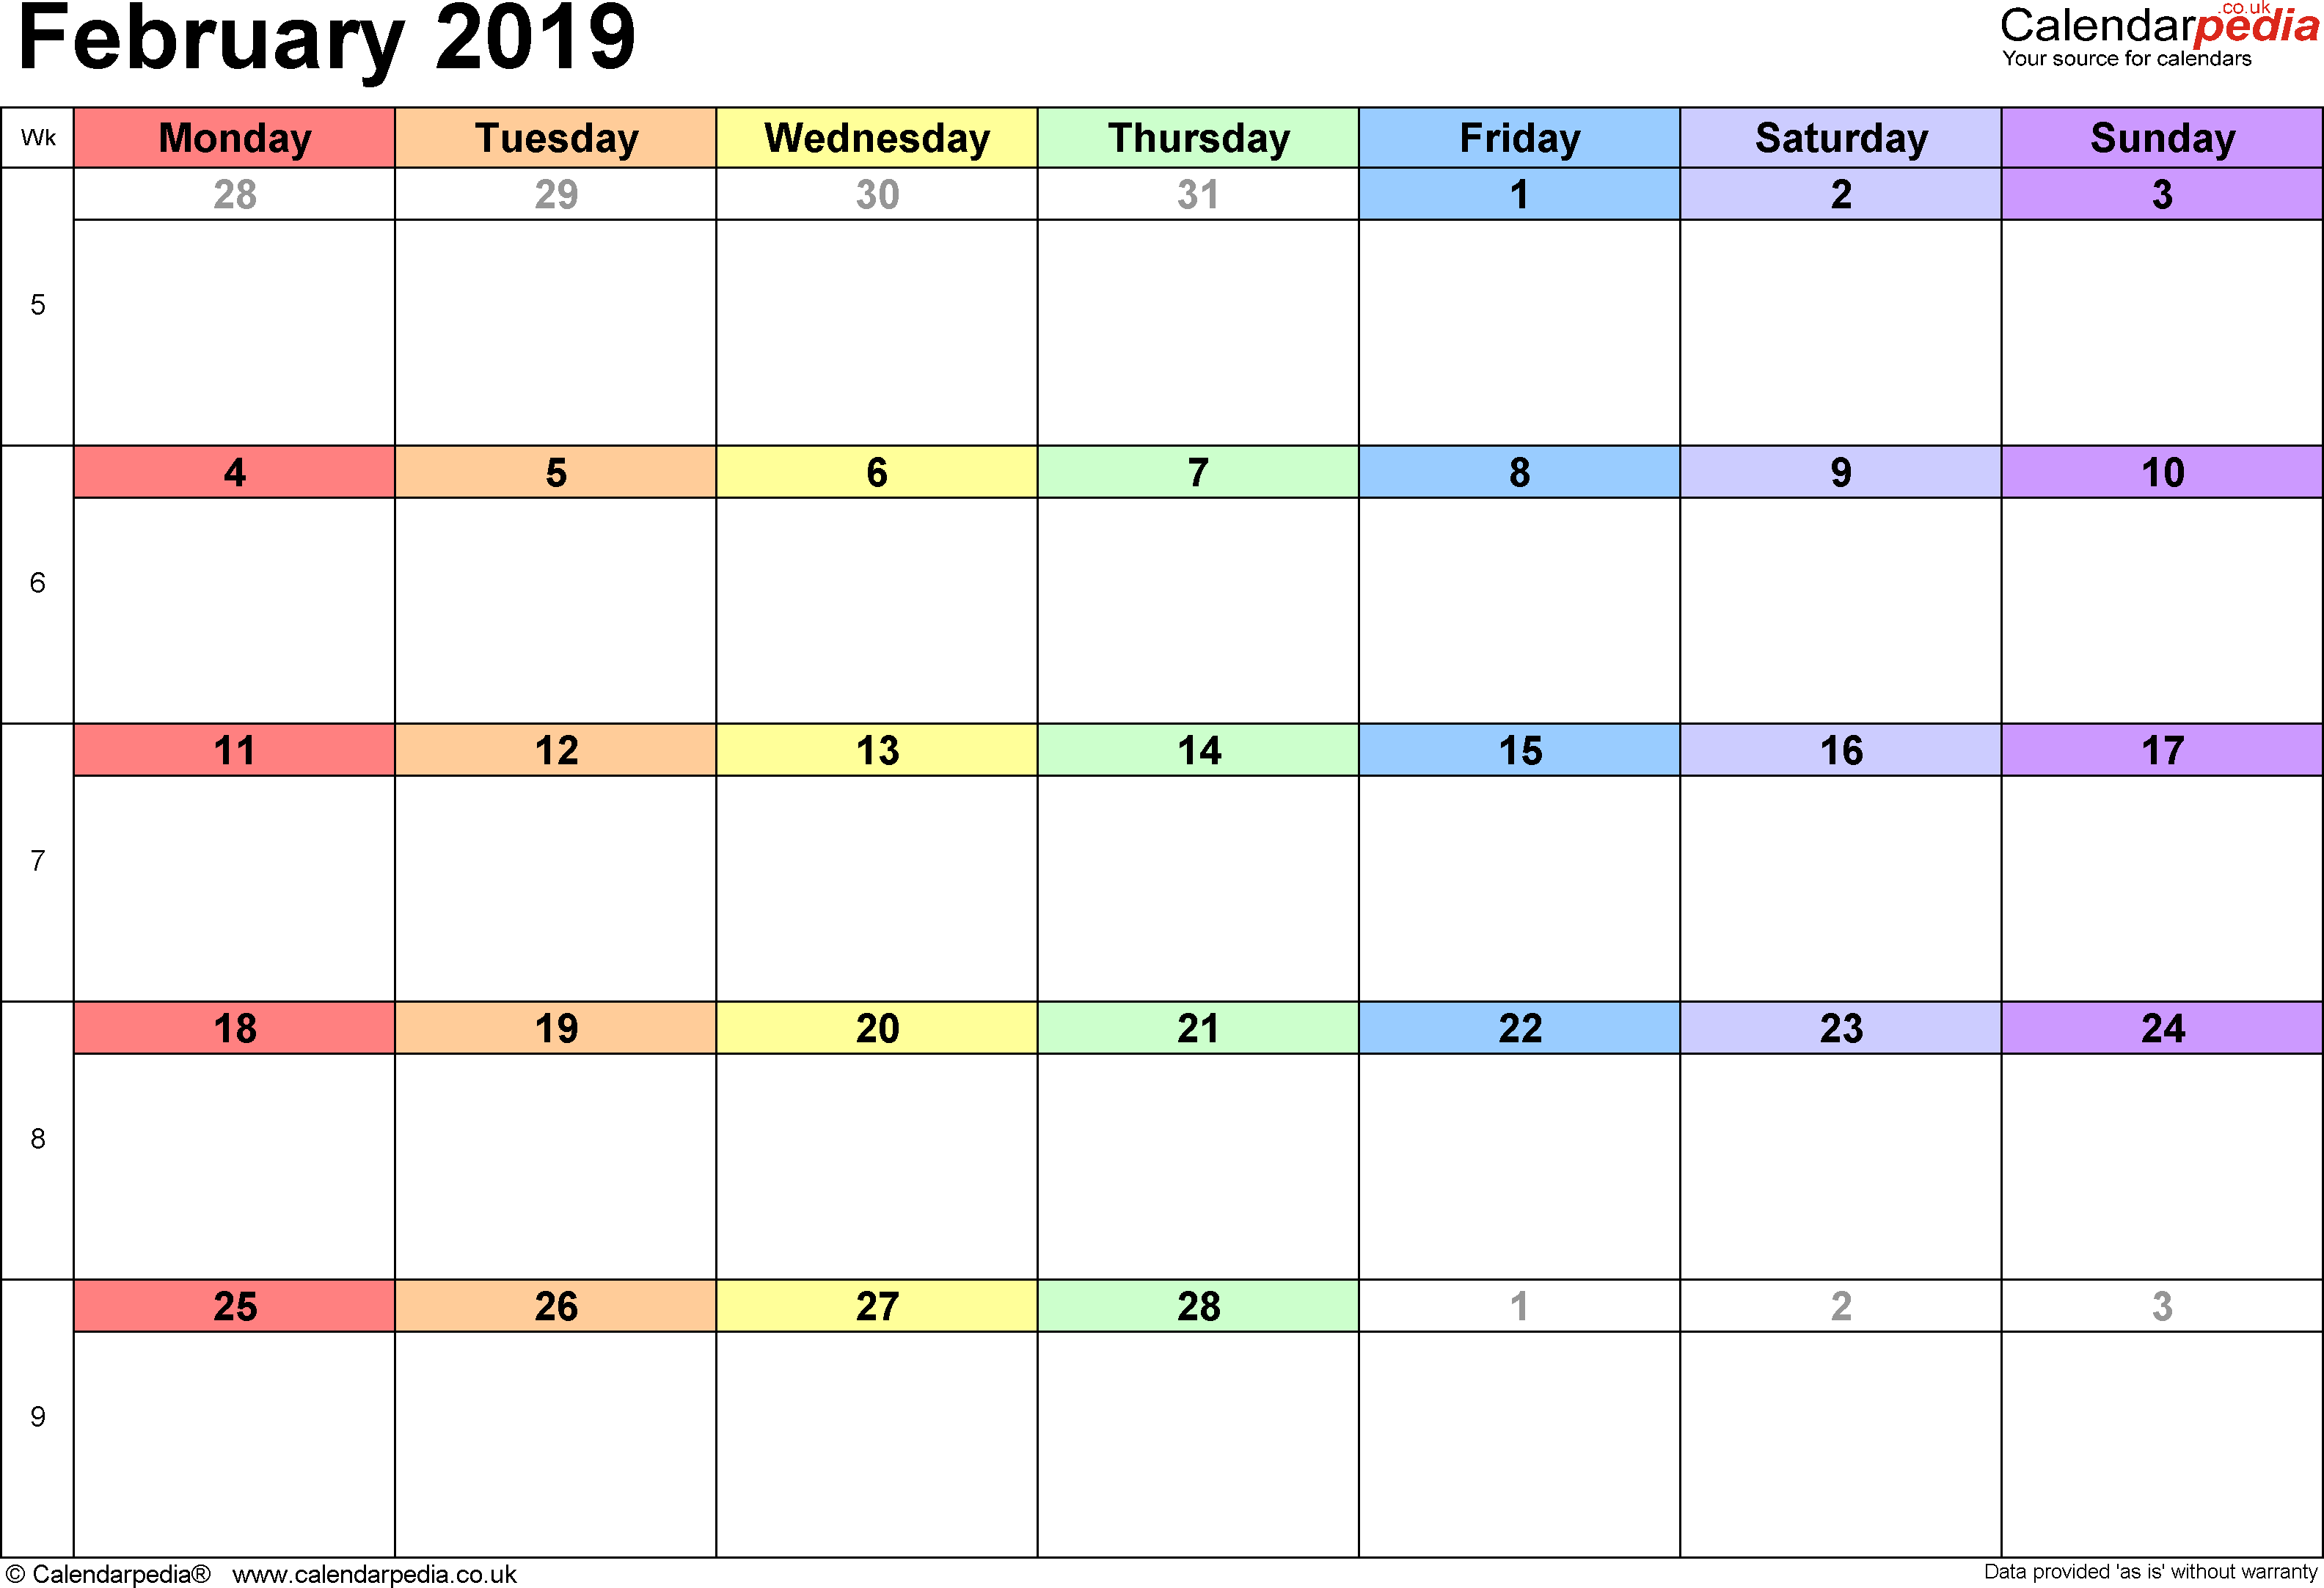 Calendar February 2019, landscape orientation, 1 page, with UK bank holidays and week numbers